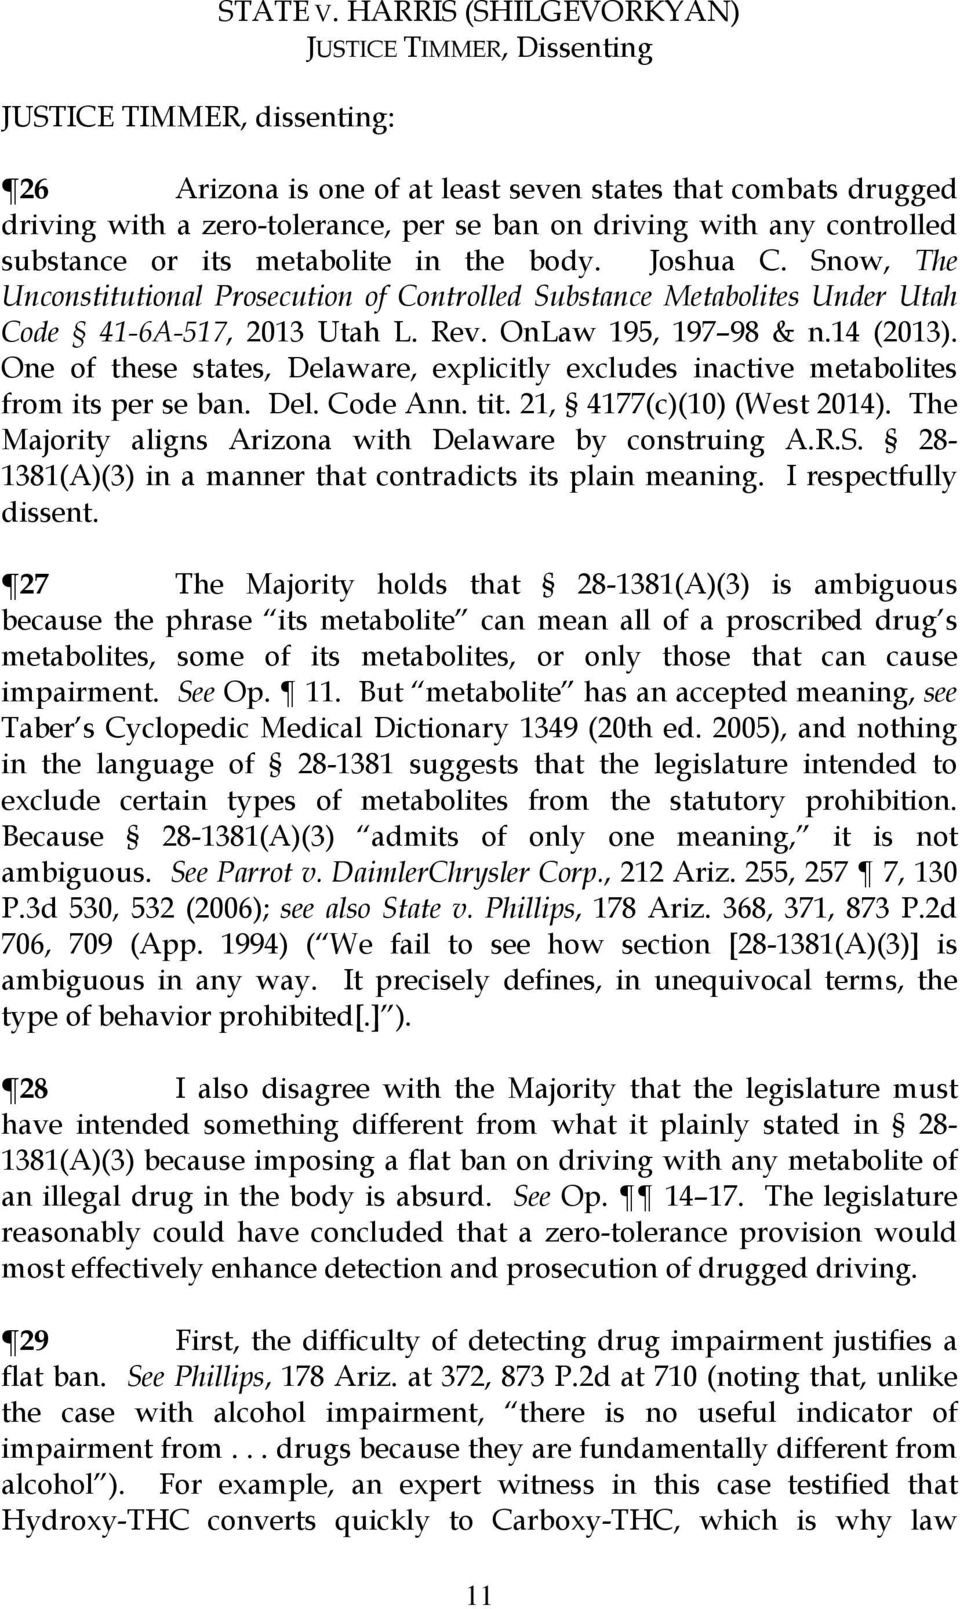 its metabolite in the body. Joshua C. Snow, The Unconstitutional Prosecution of Controlled Substance Metabolites Under Utah Code 41-6A-517, 2013 Utah L. Rev. OnLaw 195, 197 98 & n.14 (2013).